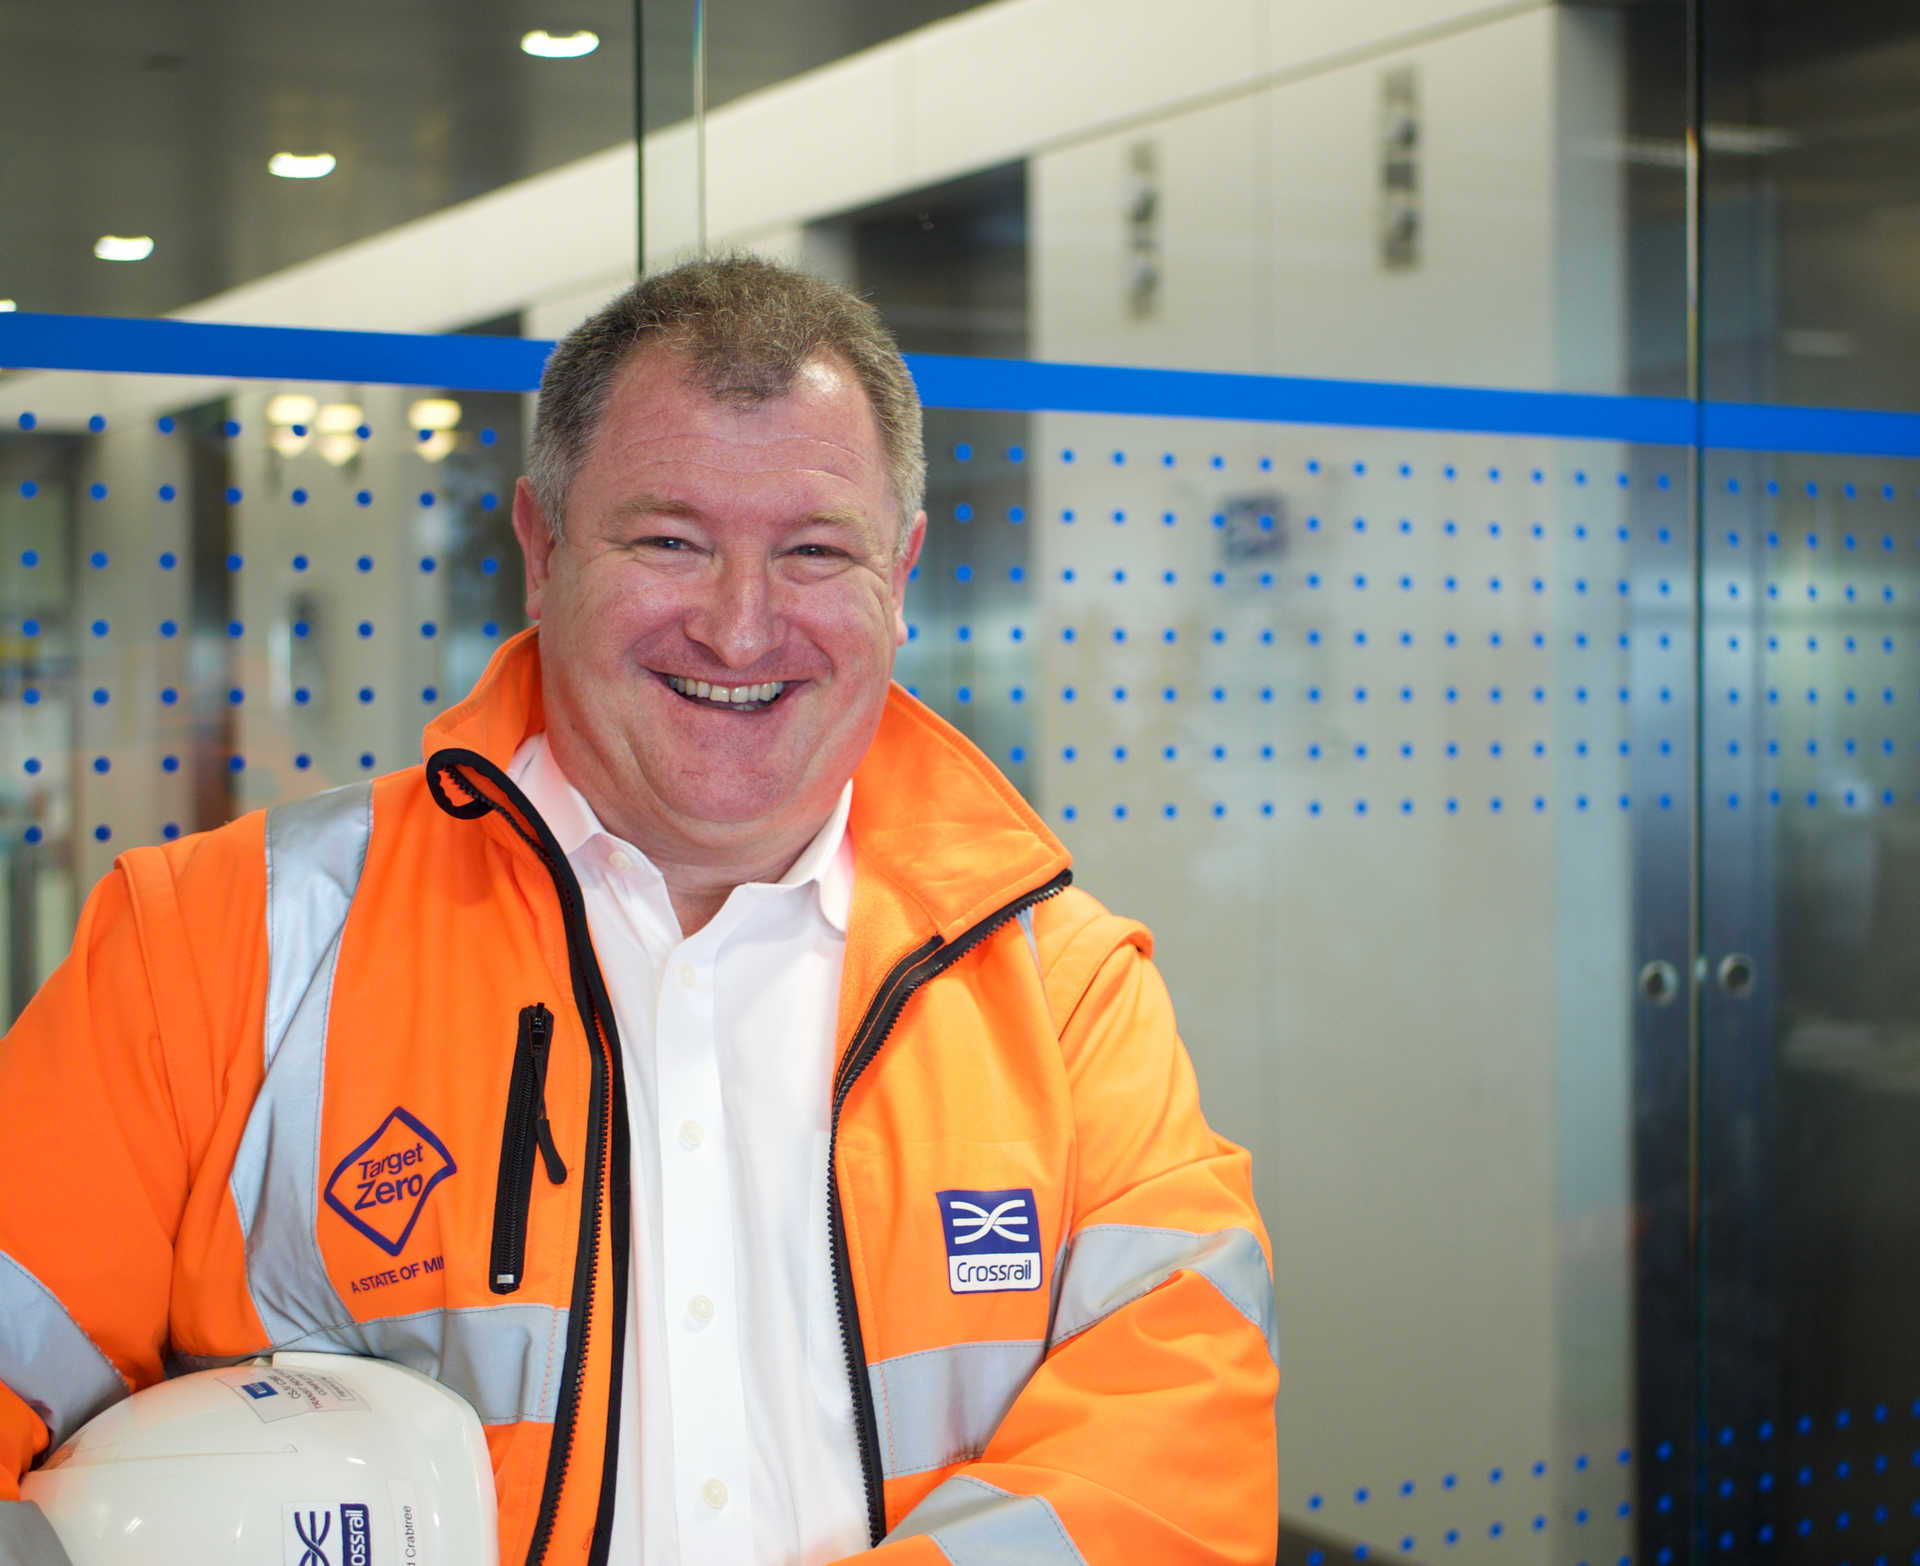 David Crabtree - Construction Manager, Tottenham Court Road station